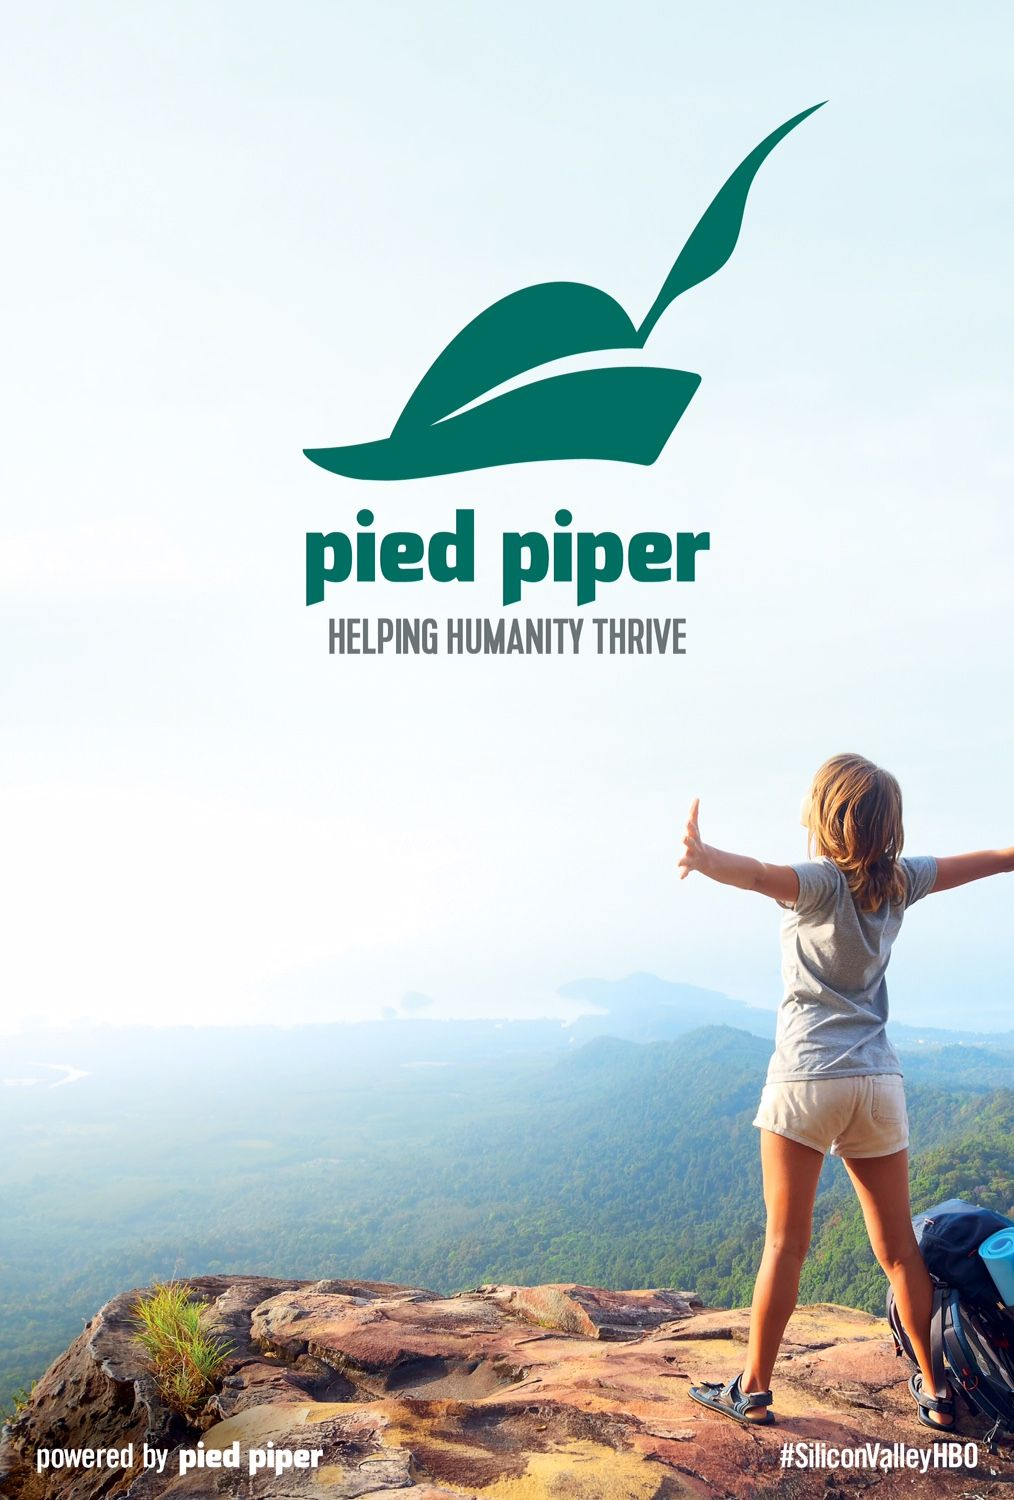 Hbos Fake Posters For Silicon Valleys Pied Piper Perfectly Mock